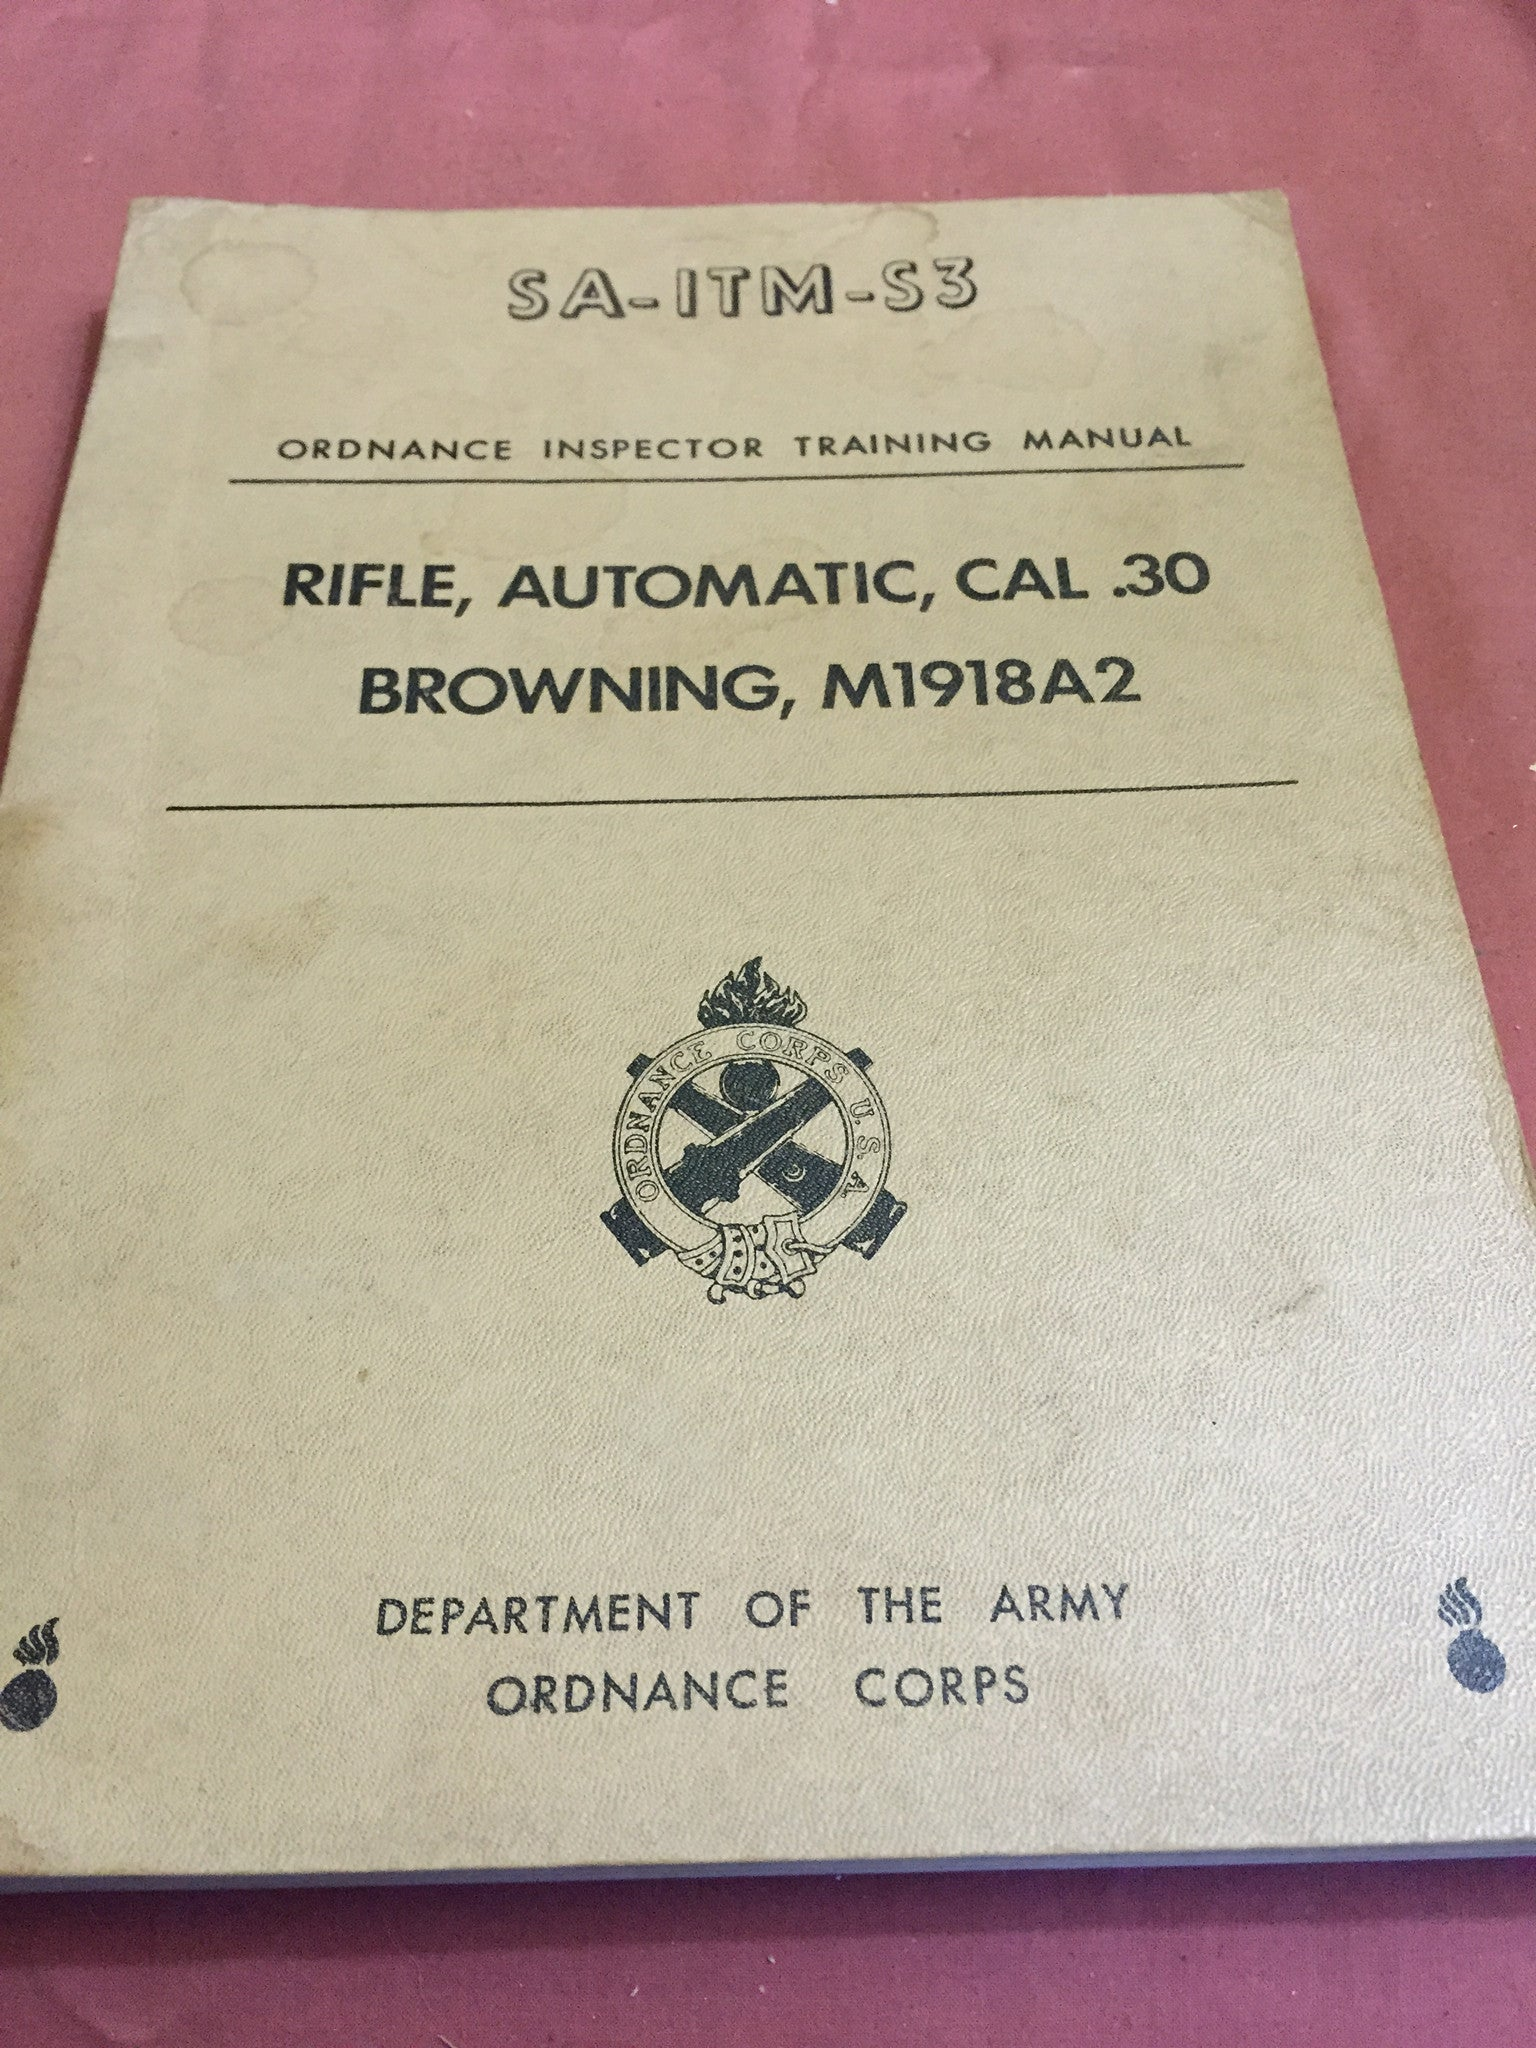 Ordnance Inspectors Training Manual